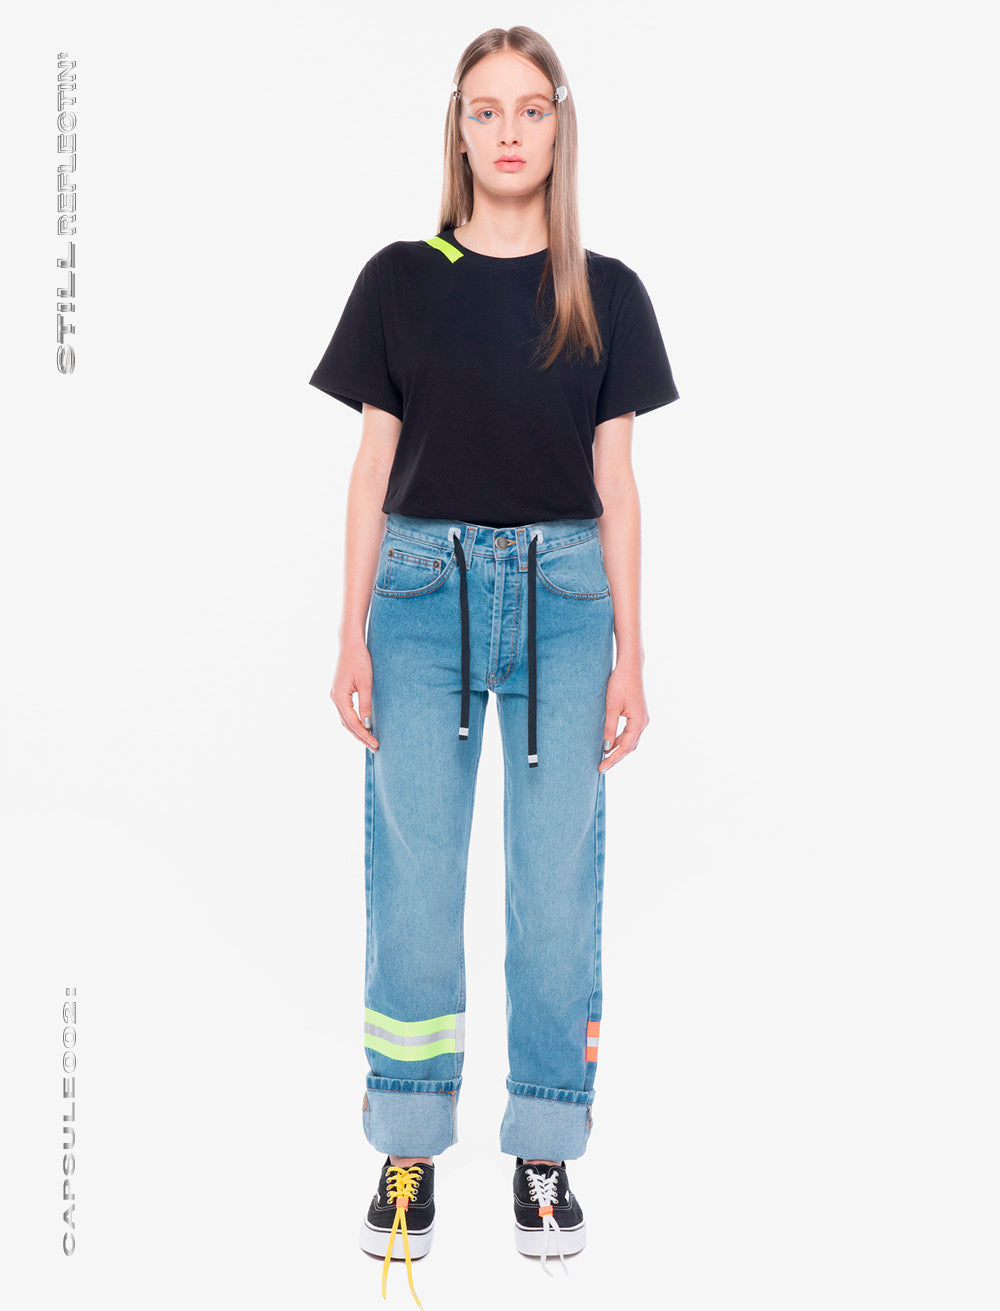 JEANS // NEON REFLECTIVE STRAPS